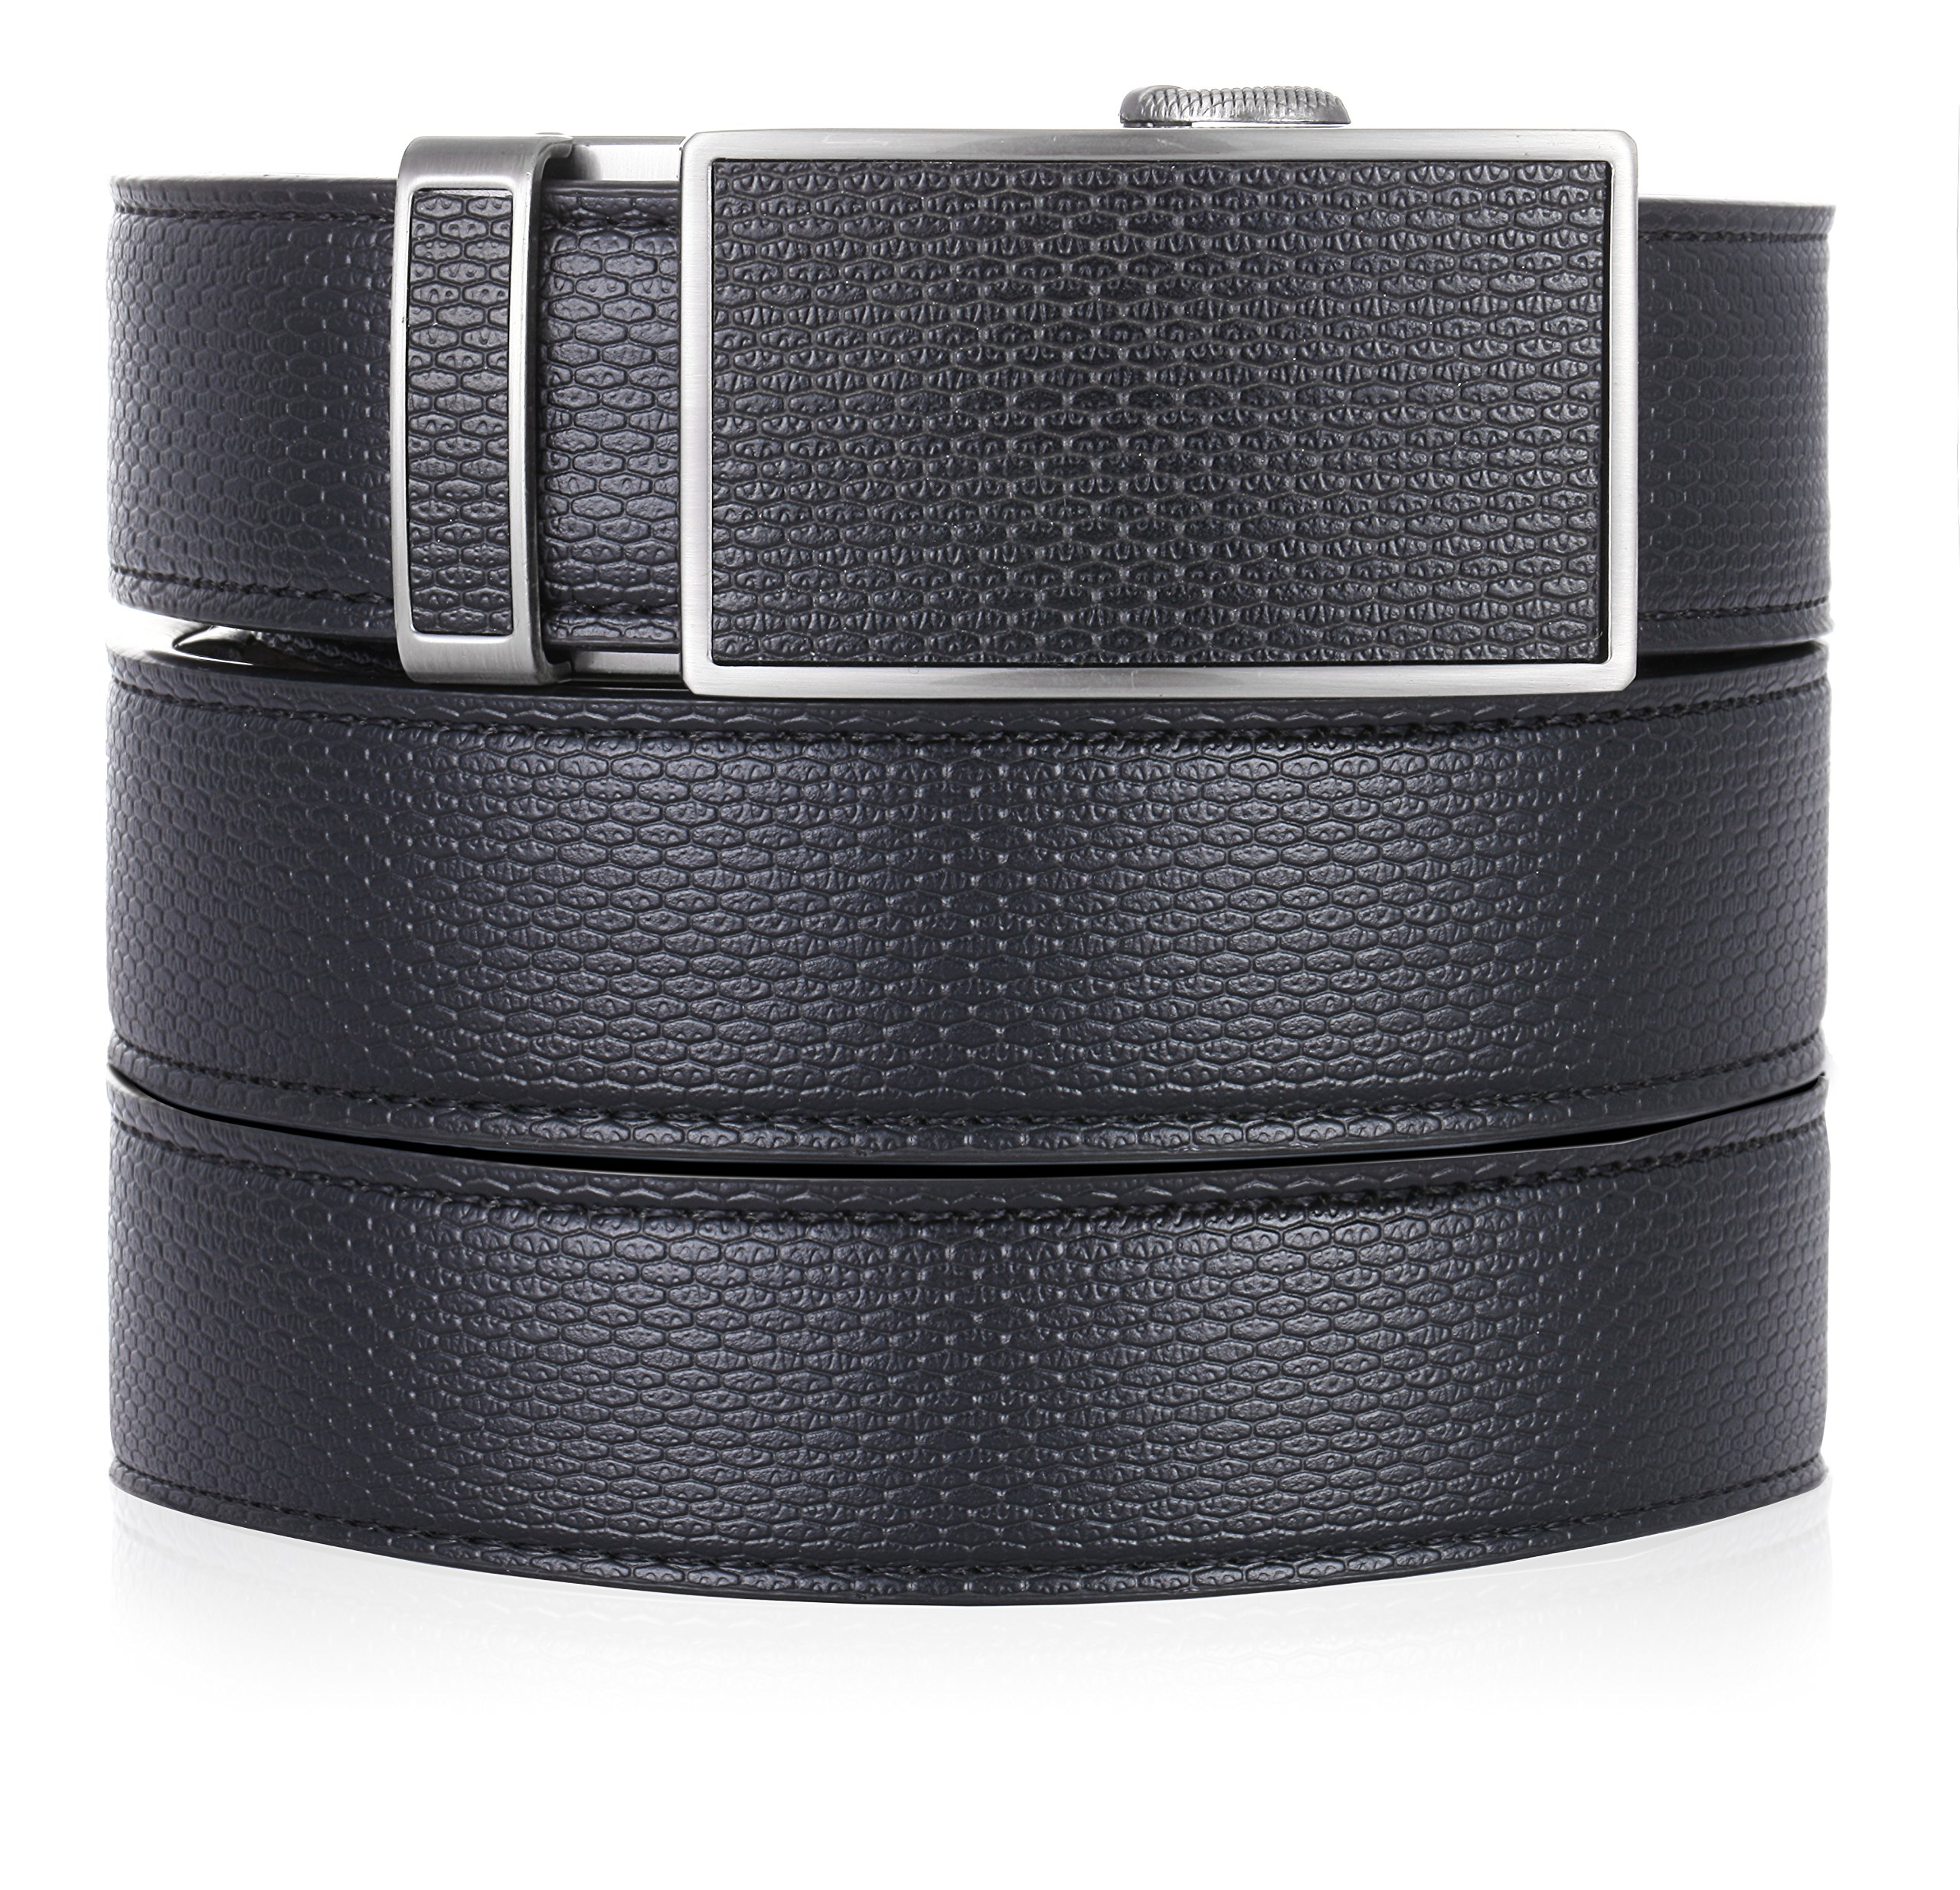 Marino Ratchet Leather Dress Belt For Men - Adjustable Click Belt with Automatic Sliding Buckle - black -Adjustable from 28'' to 44'' Waist